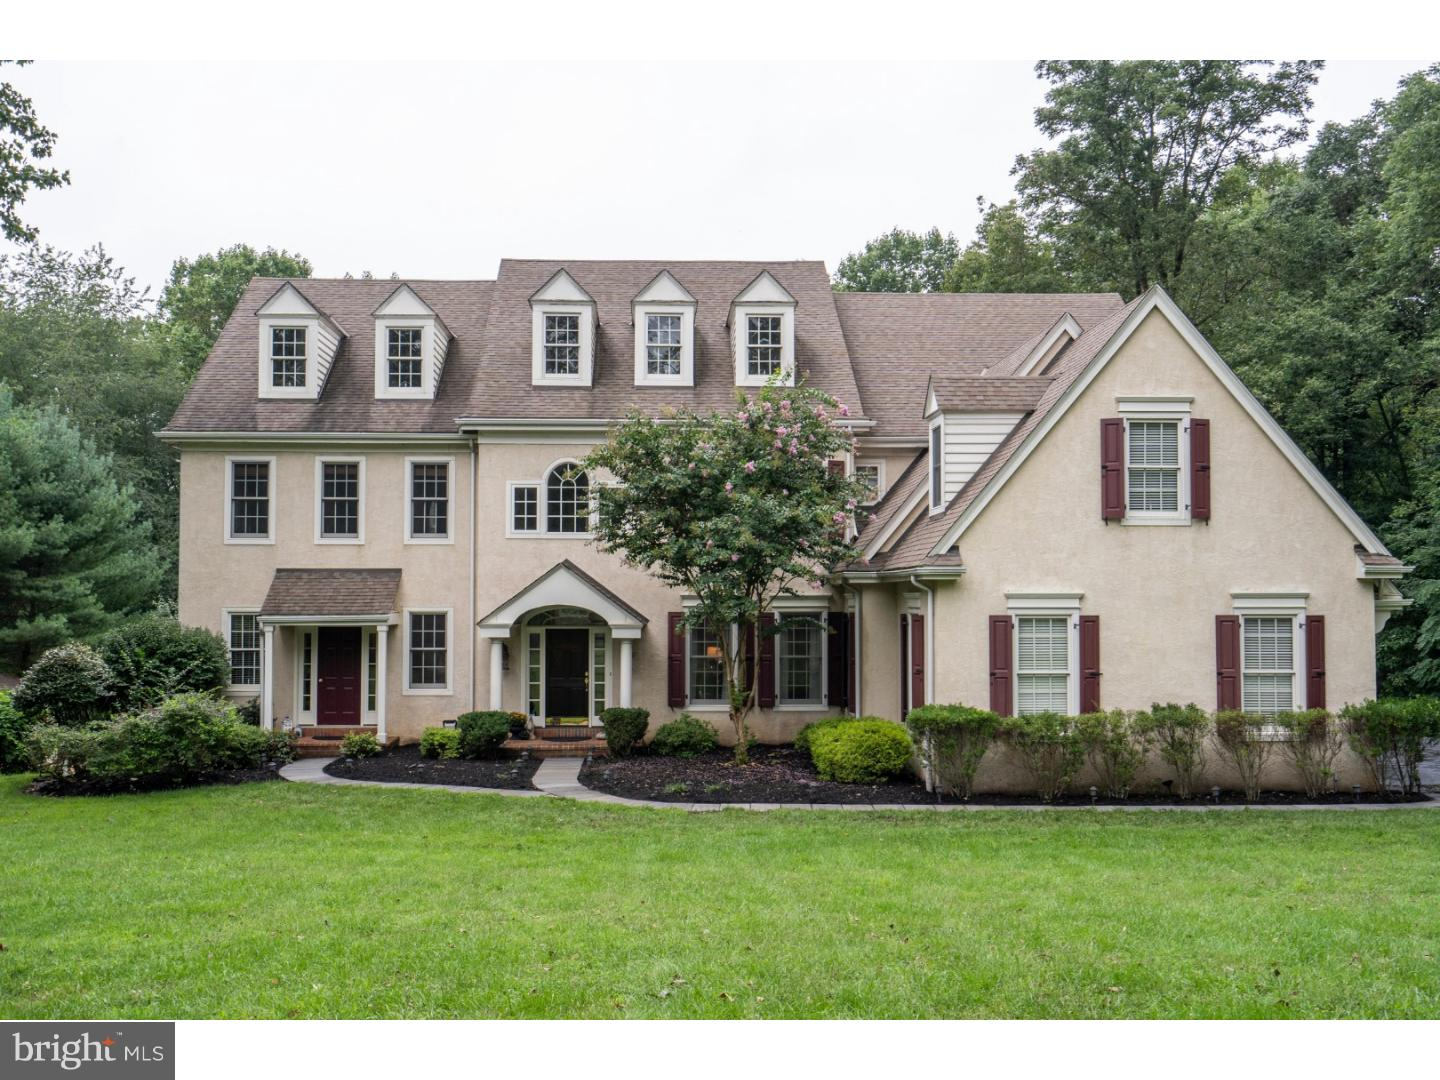 Single Family Home for Sale at 136 TIMBERLAKE Drive Media, Pennsylvania 19008 United States